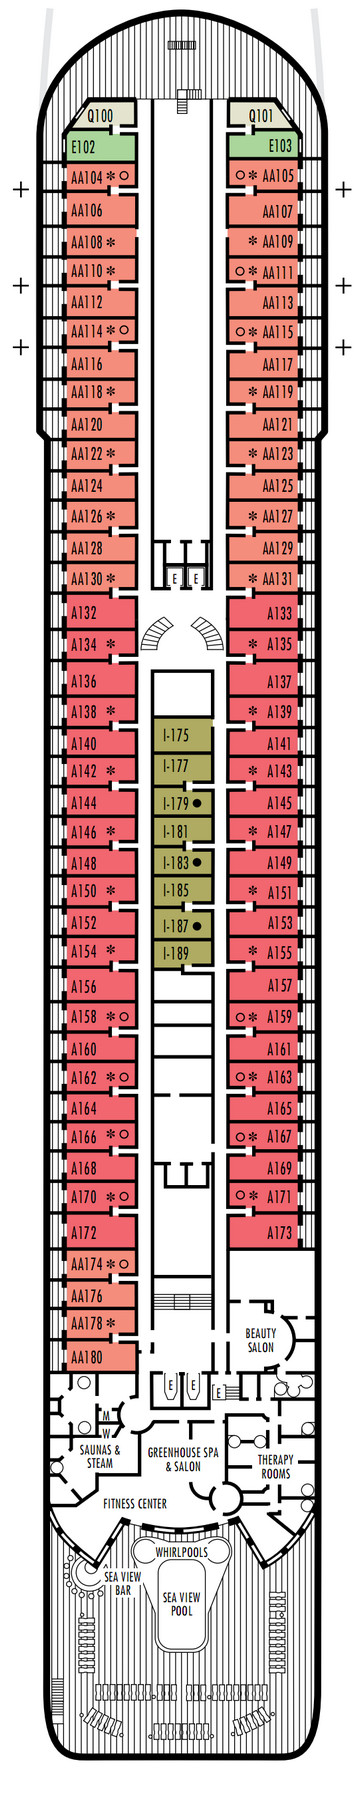 Prinsendam Deck 9 - Upper Promenade layout